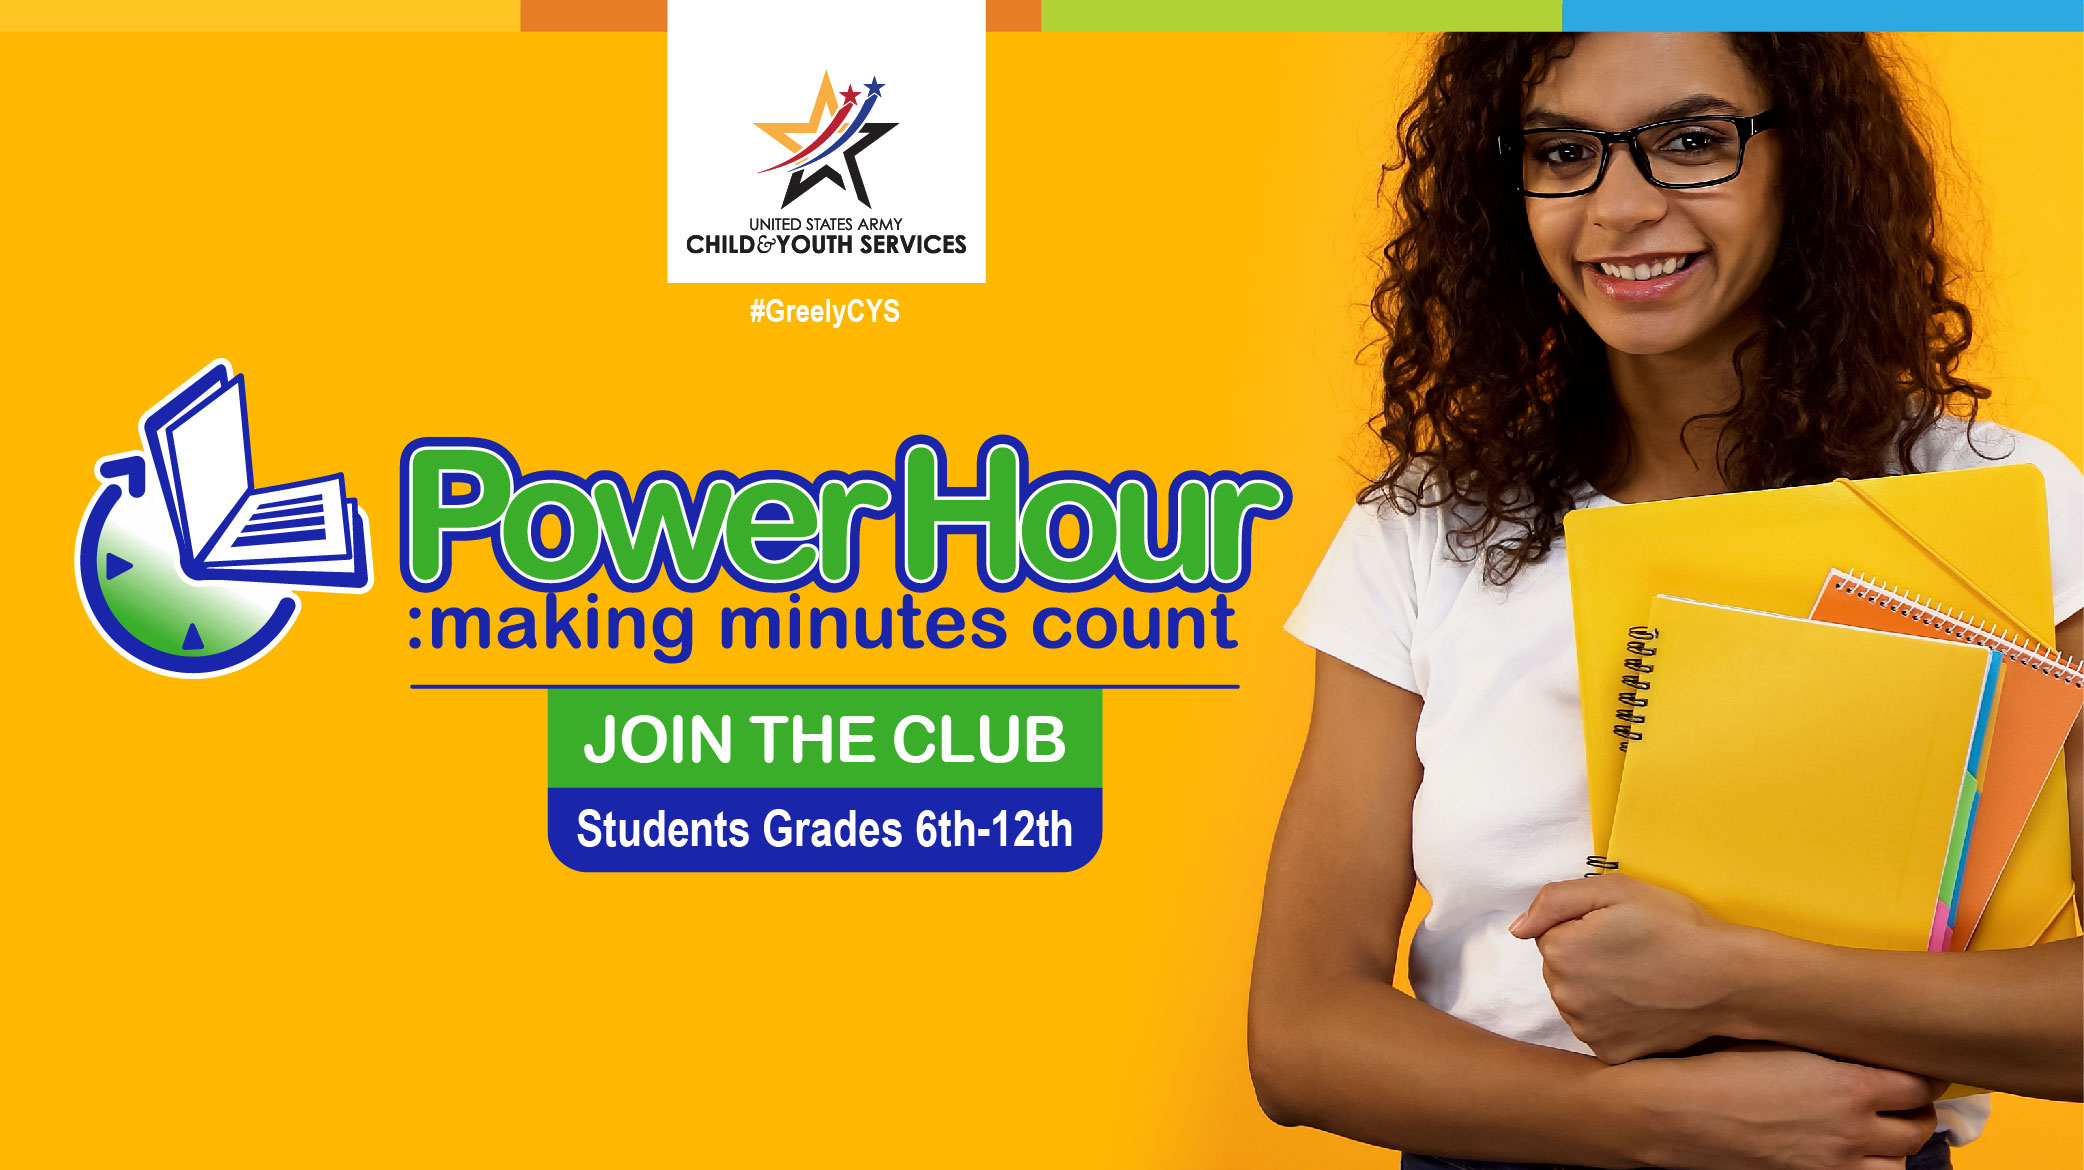 Power Hour: Making Minutes Count